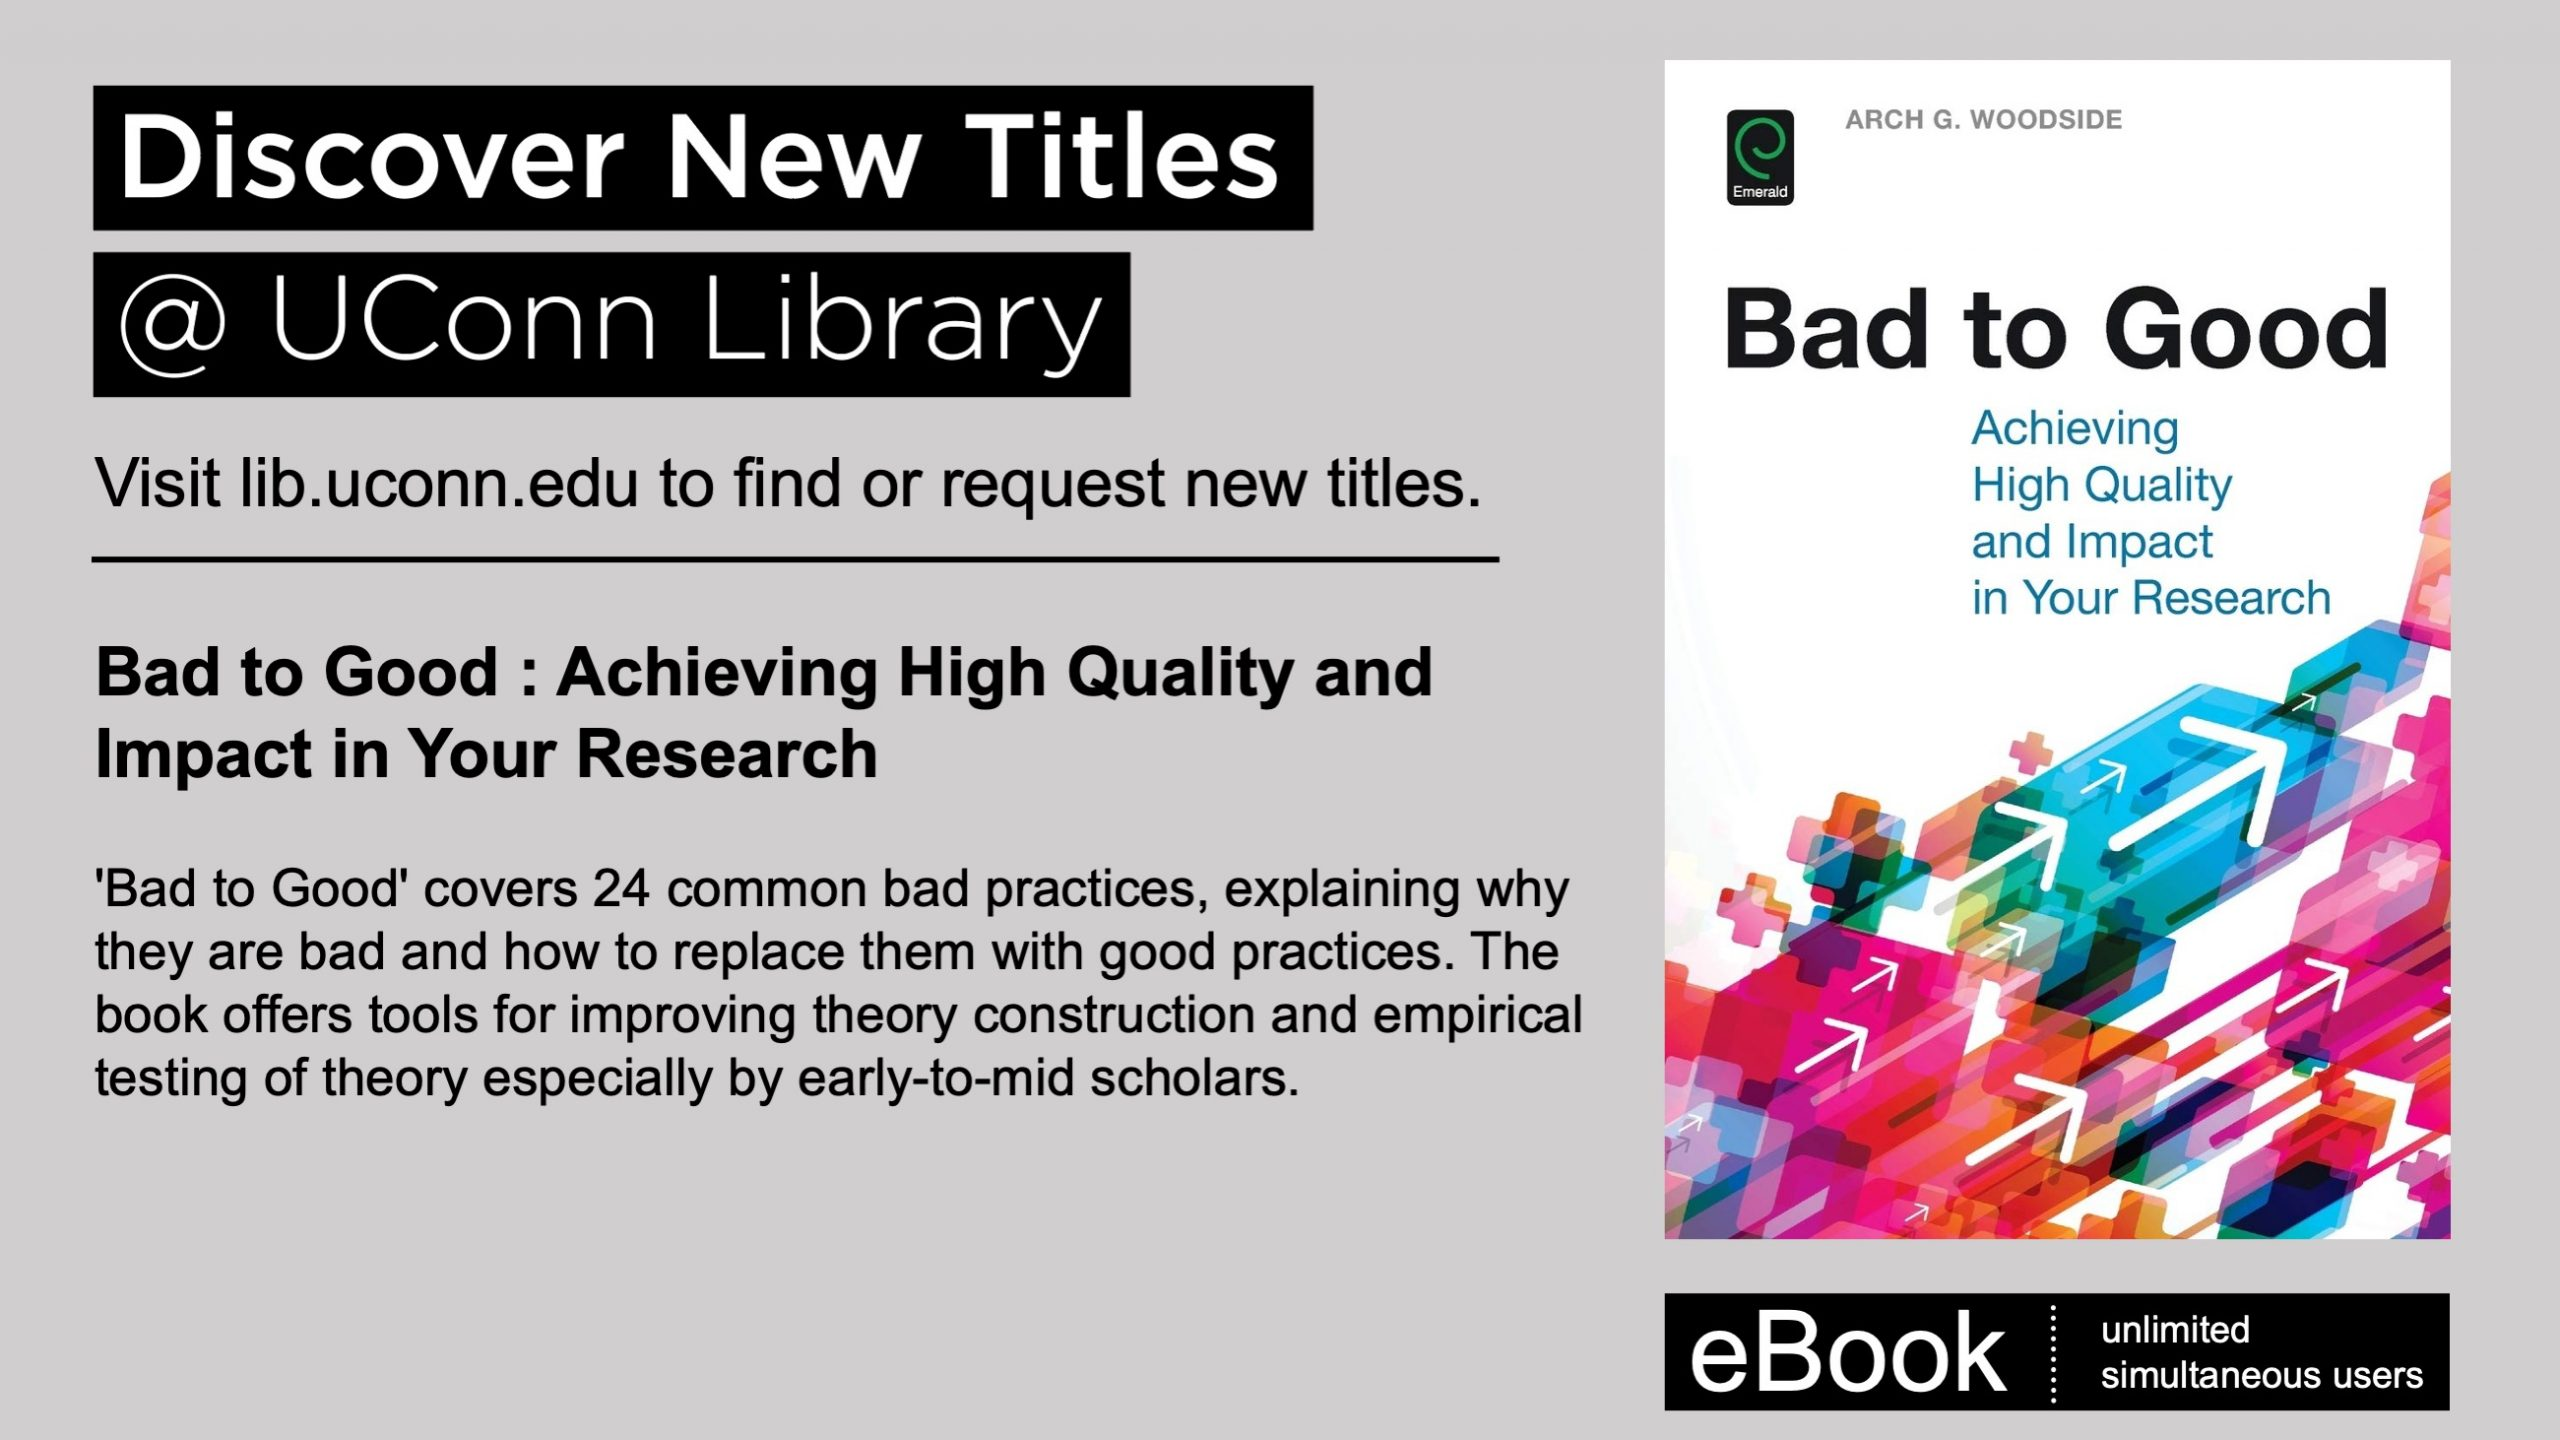 Discover New Titles at UConn Library. Visit lib.uconn.edu to find or request new titles. eBook, unlimited simultaneous users: Bad to Good : Achieving High Quality and Impact in Your Research 'Bad to Good' covers 24 common bad practices, explaining why they are bad and how to replace them with good practices. The book offers tools for improving theory construction and empirical testing of theory especially by early-to-mid scholars.